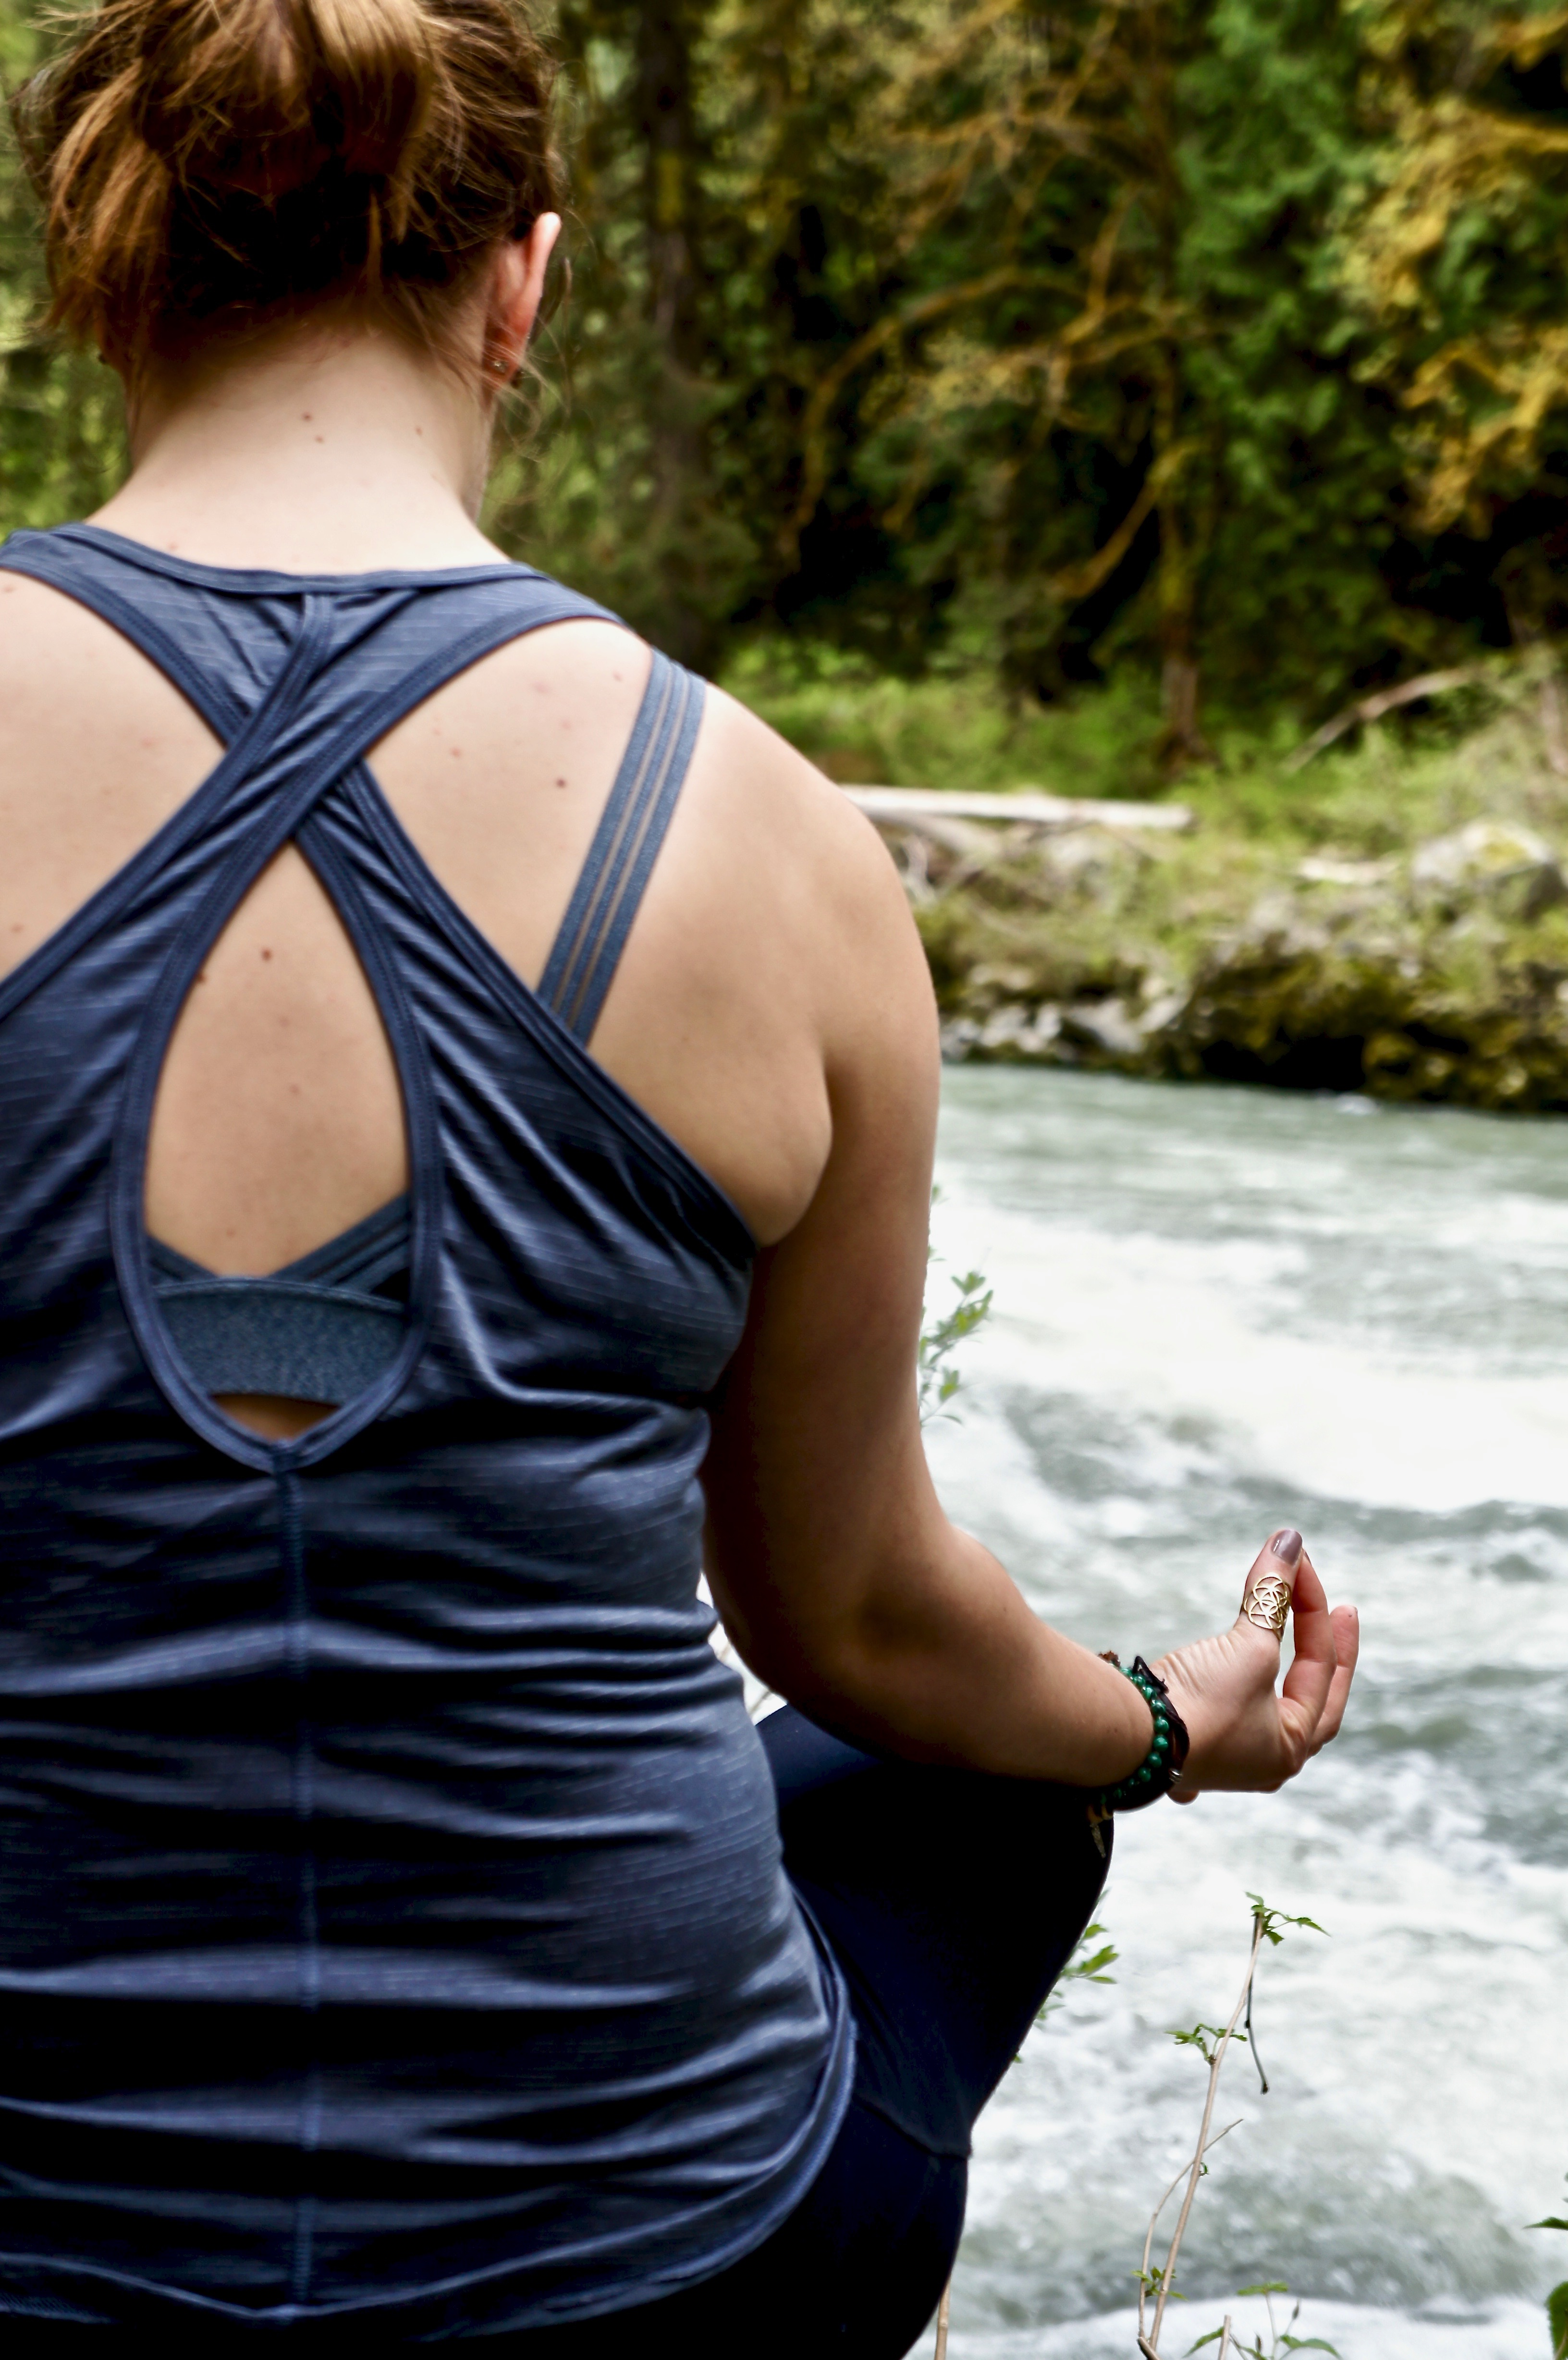 Yoga and meditation at the Stillaguamish river